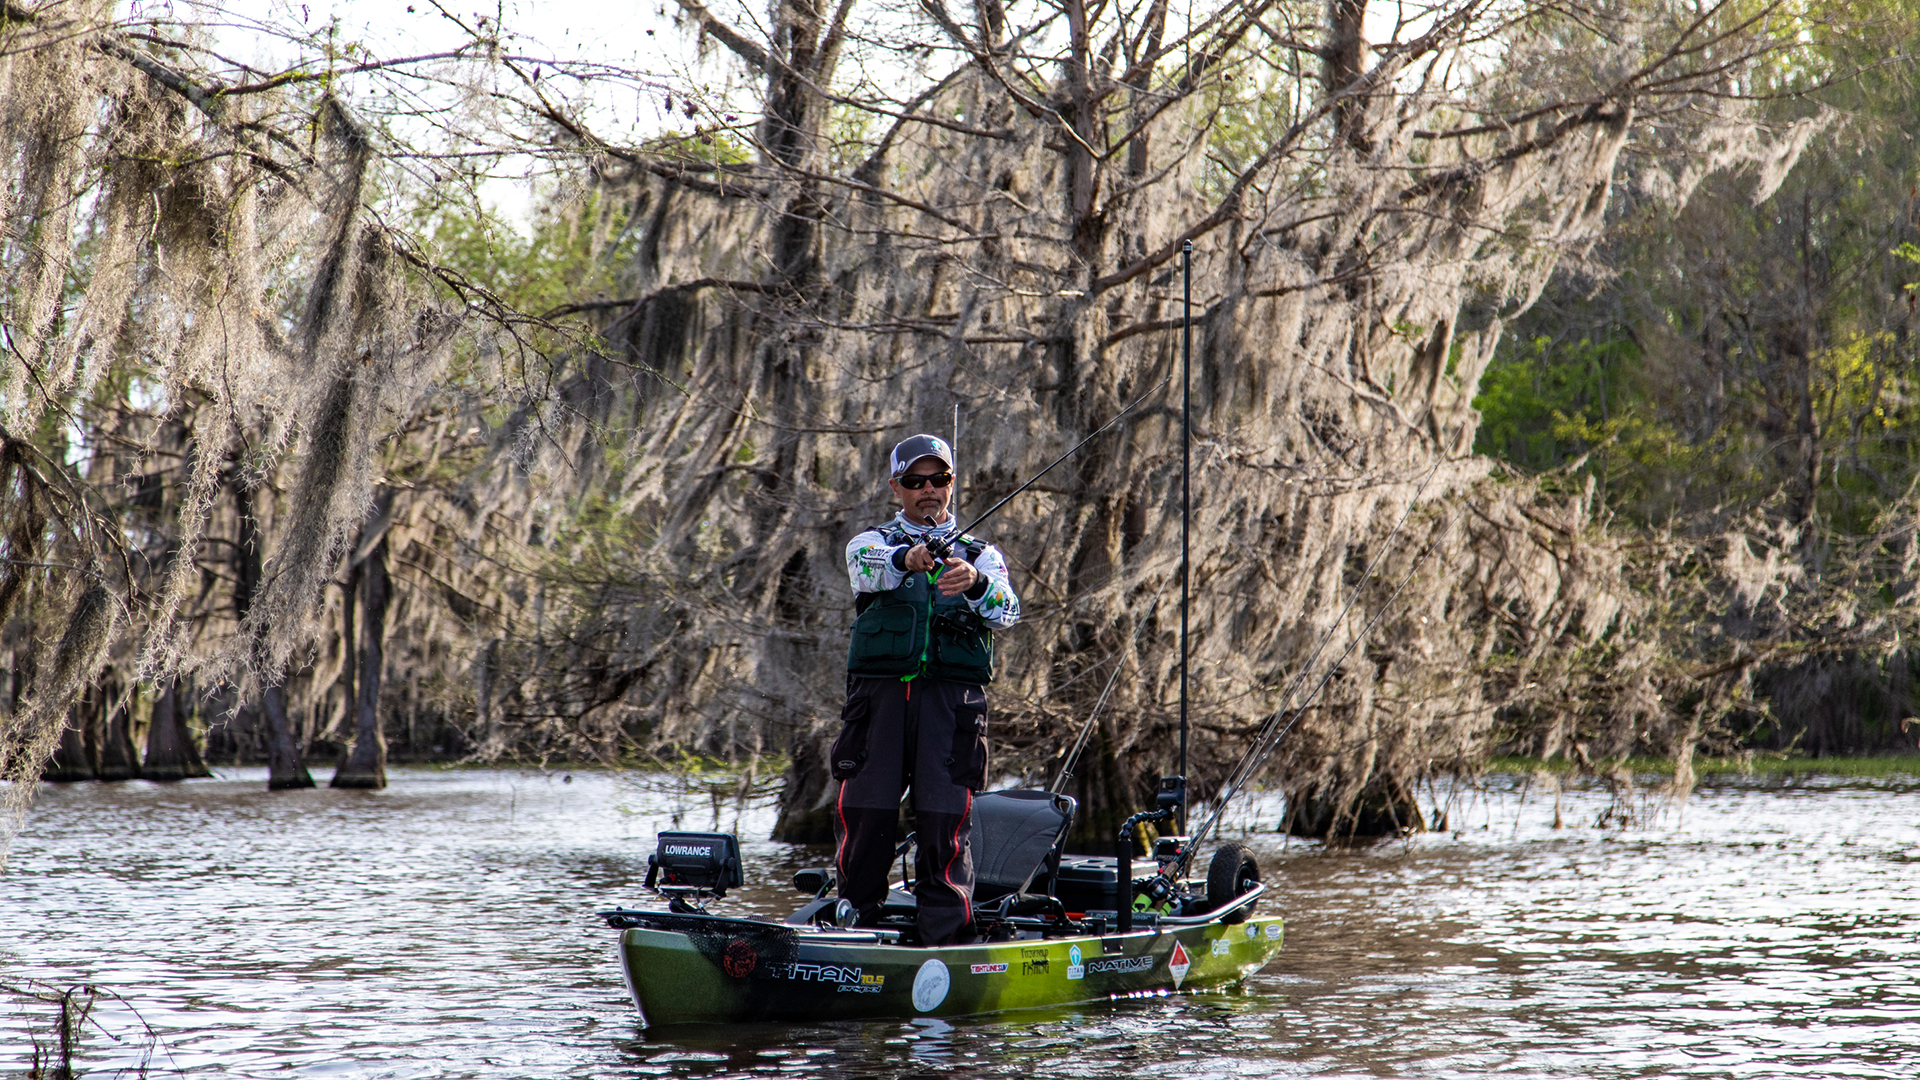 Mike Elsea on Lake Caddo in his Native Titan Fishing Kayak